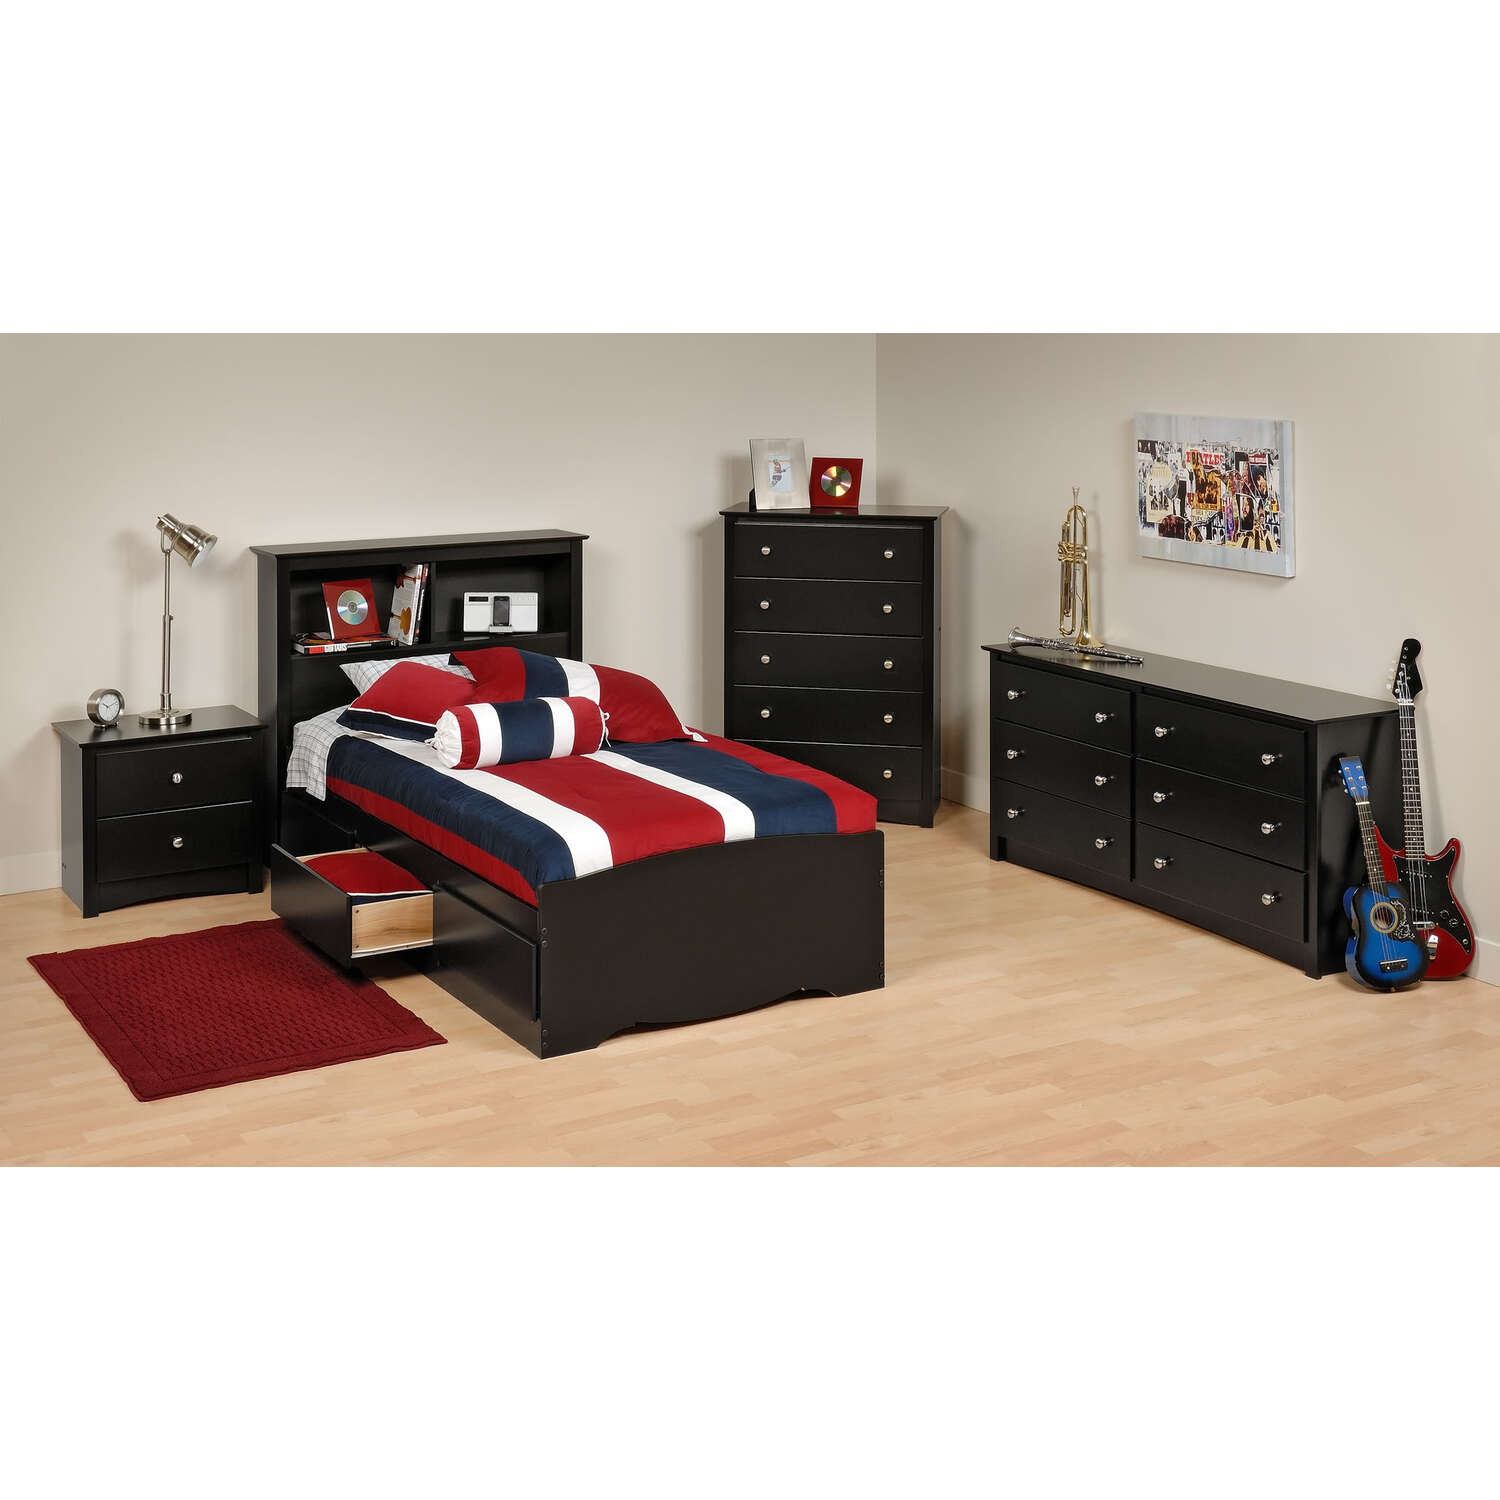 Prepac Black Sonoma Twin Bedroom Set by OJ merce $6 99